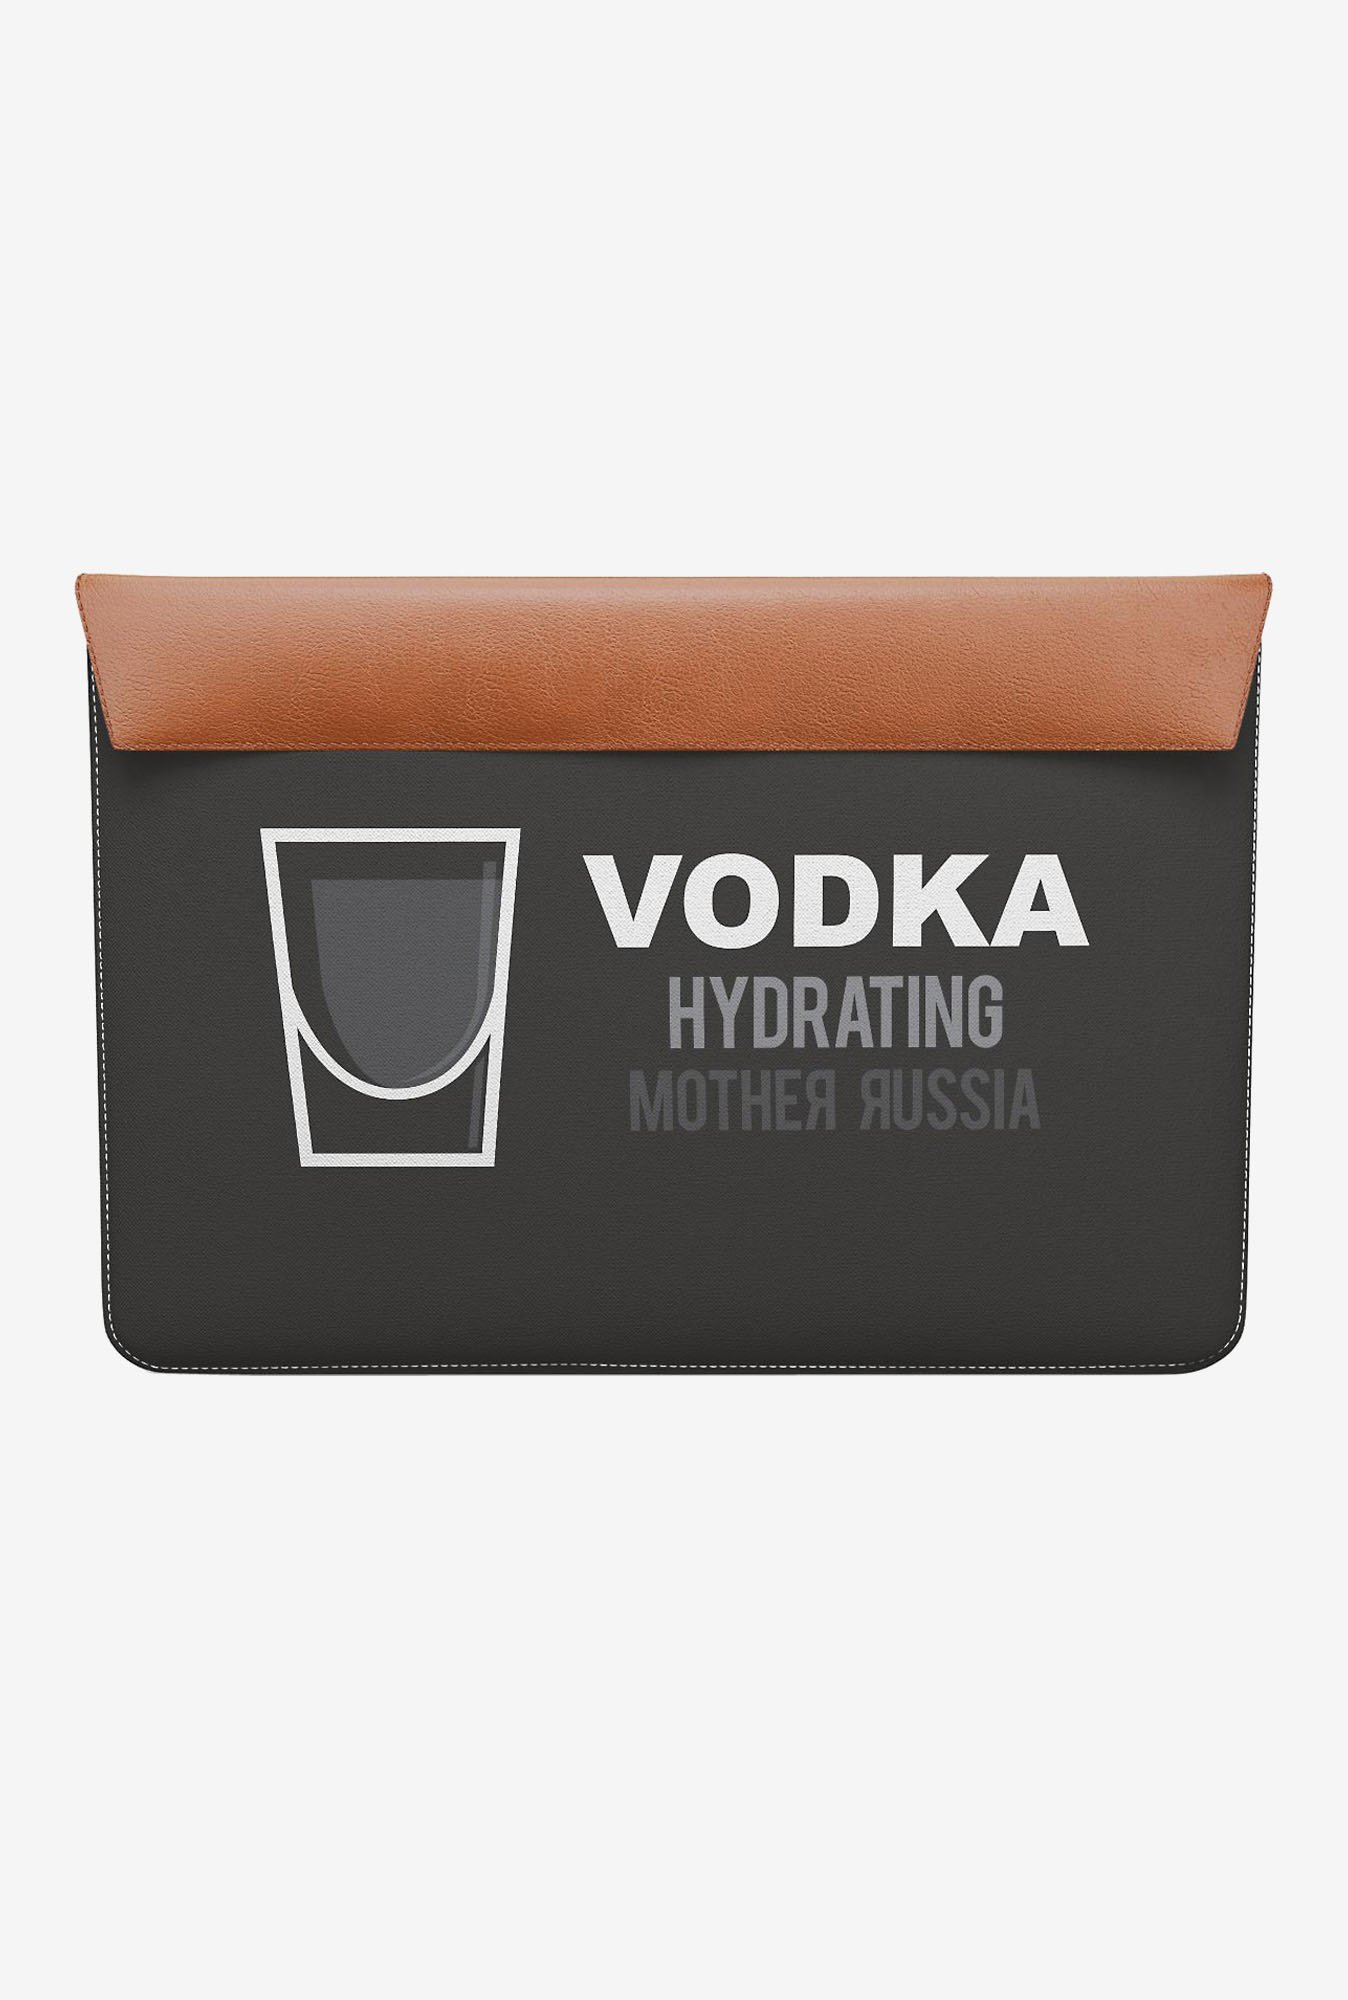 DailyObjects Vodka MacBook Air 11 Envelope Sleeve